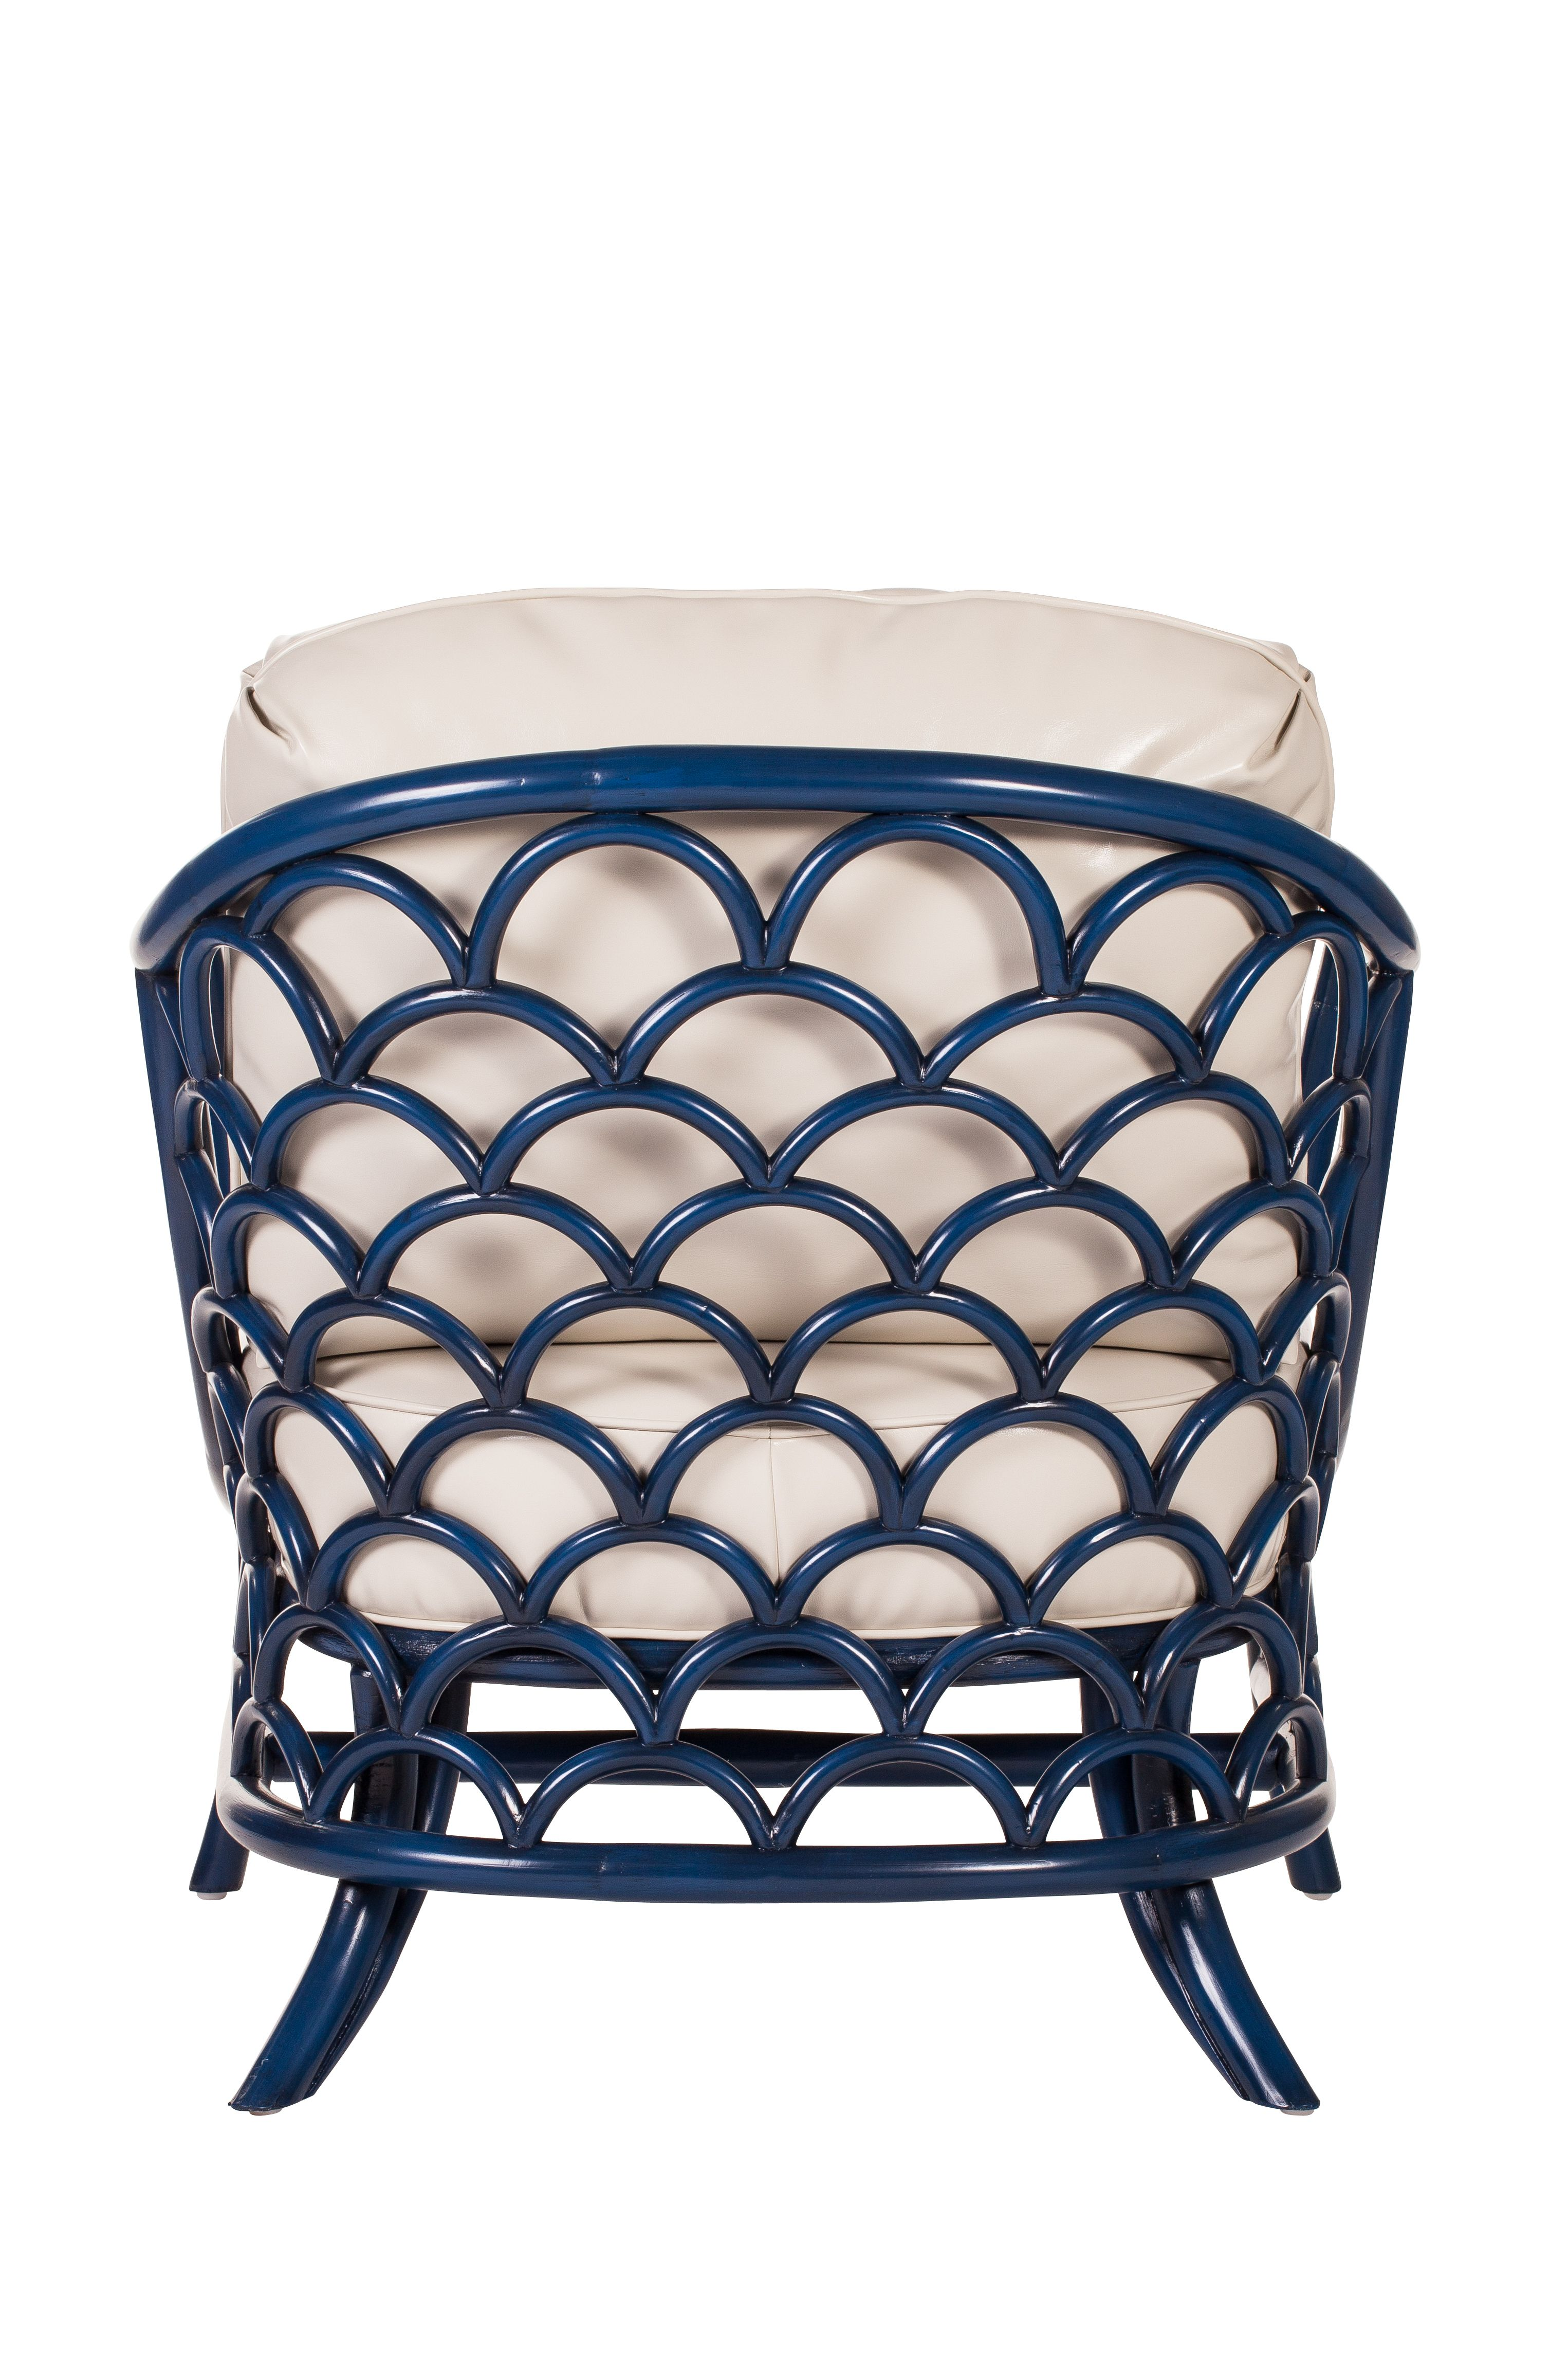 the back of the koi lounge chair by david francis furniture  - the back of the koi lounge chair by david francis furnituredavidfrancisfurniture authenticfurnishings